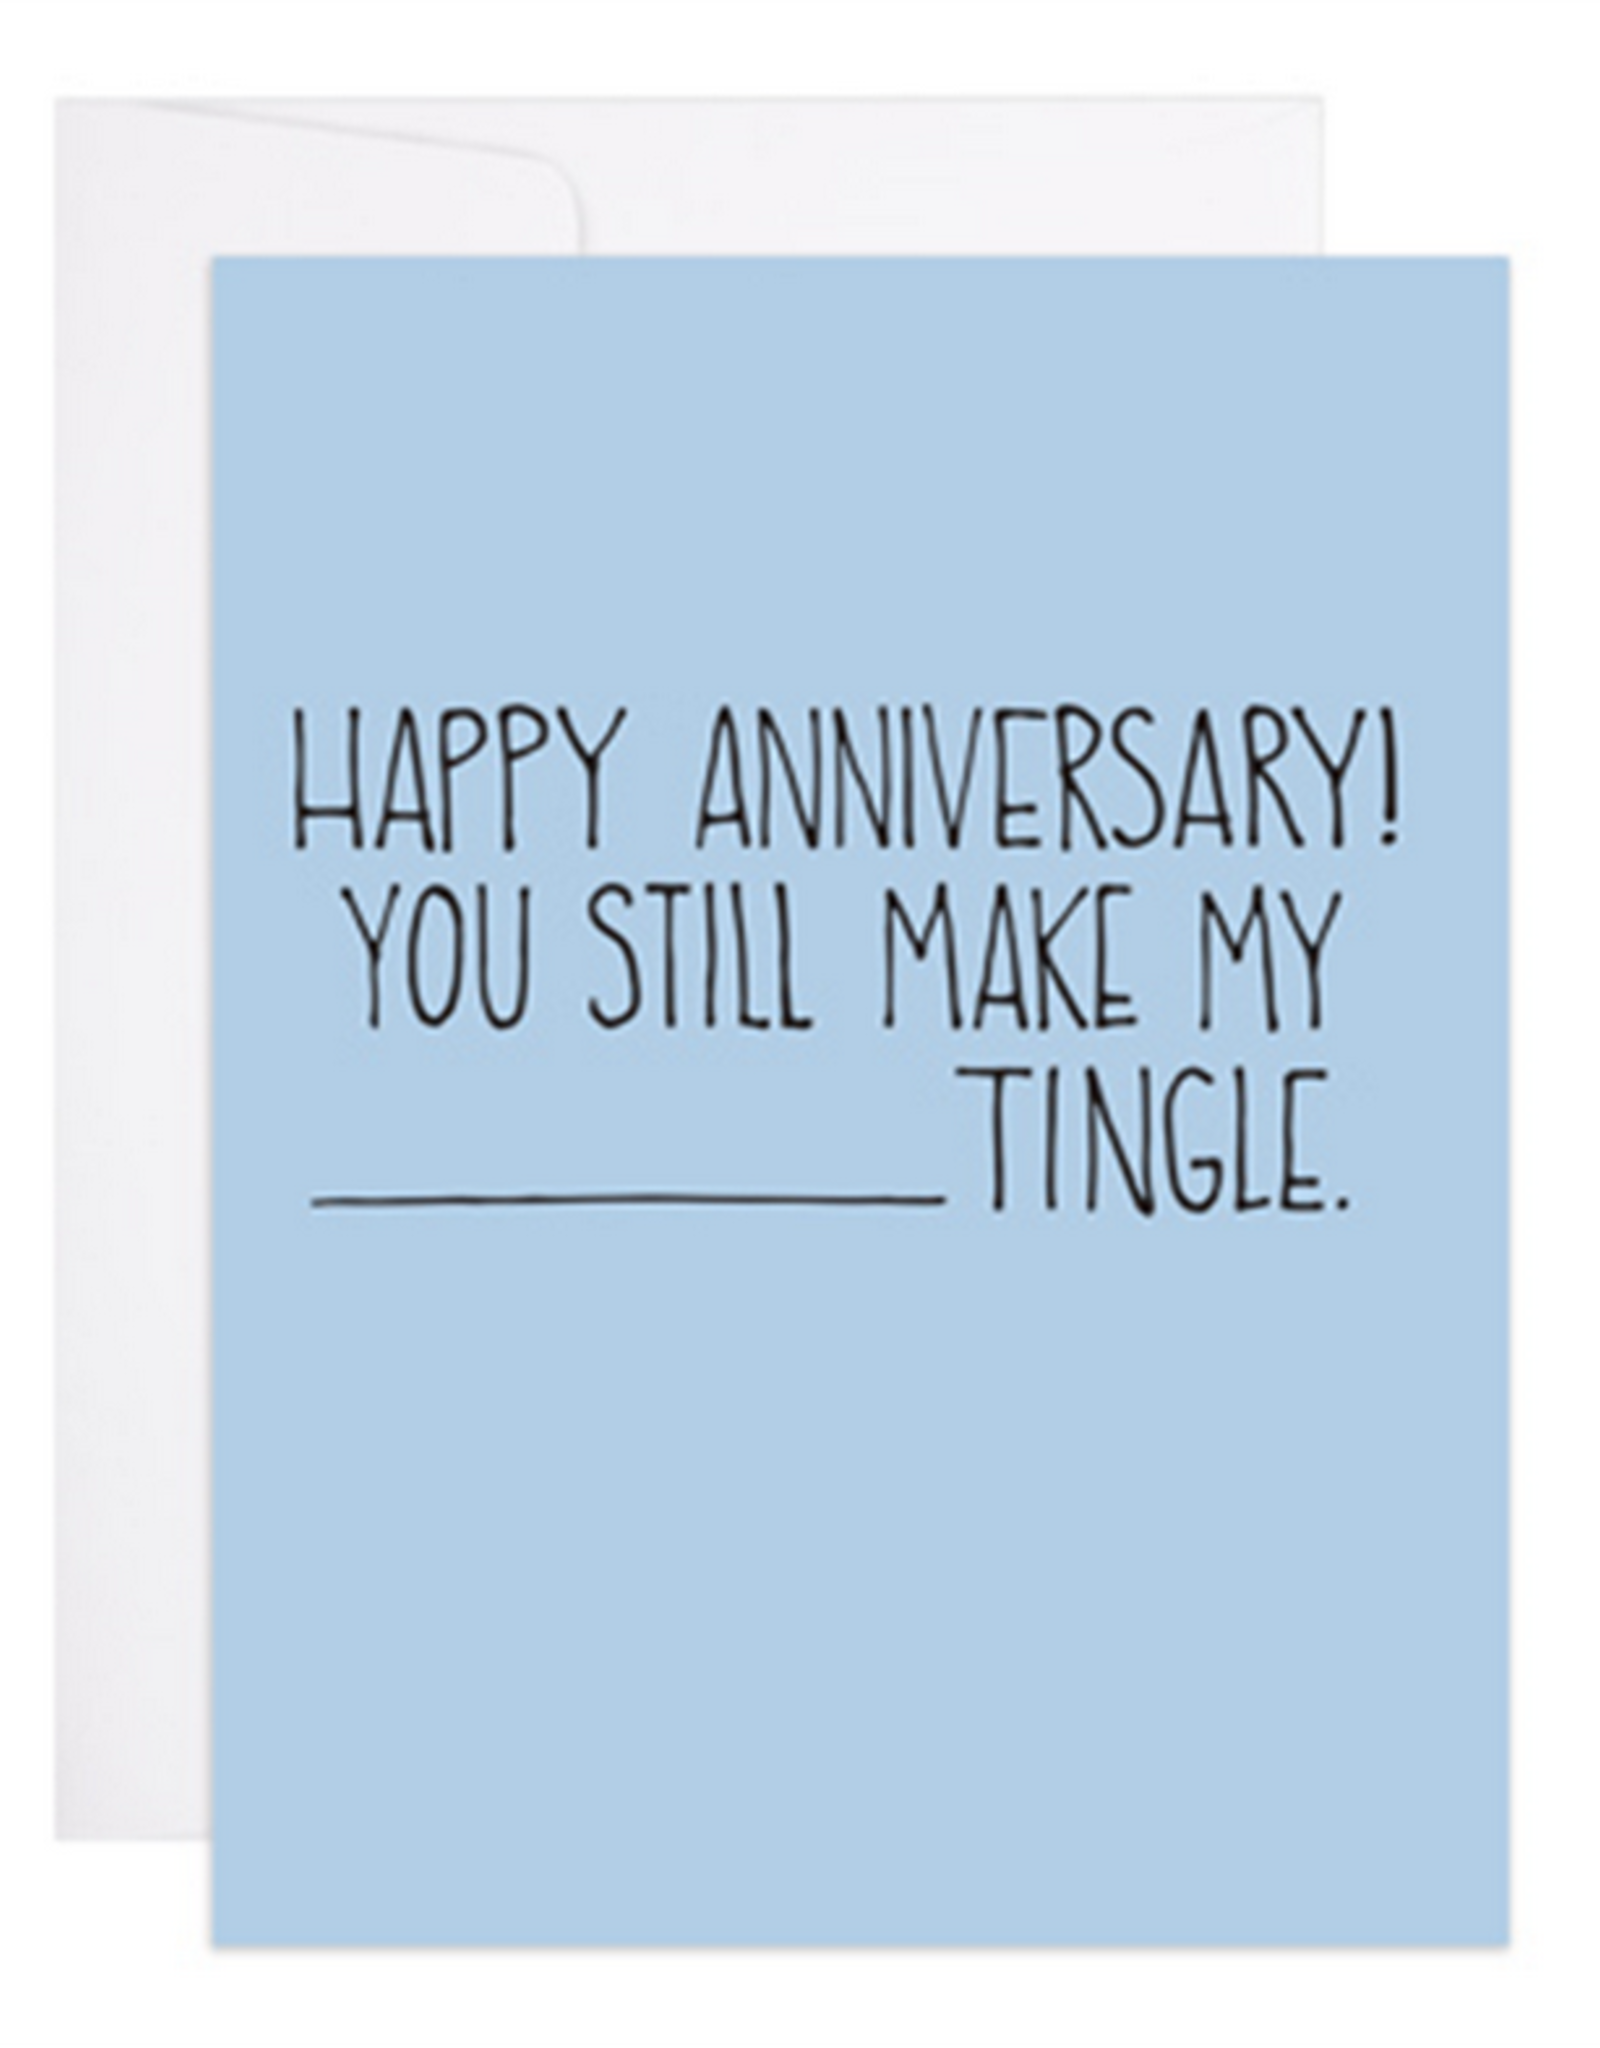 9th Letter Press Happy Anniversary! You Still Make My (Blank) Tingle Greeting Card